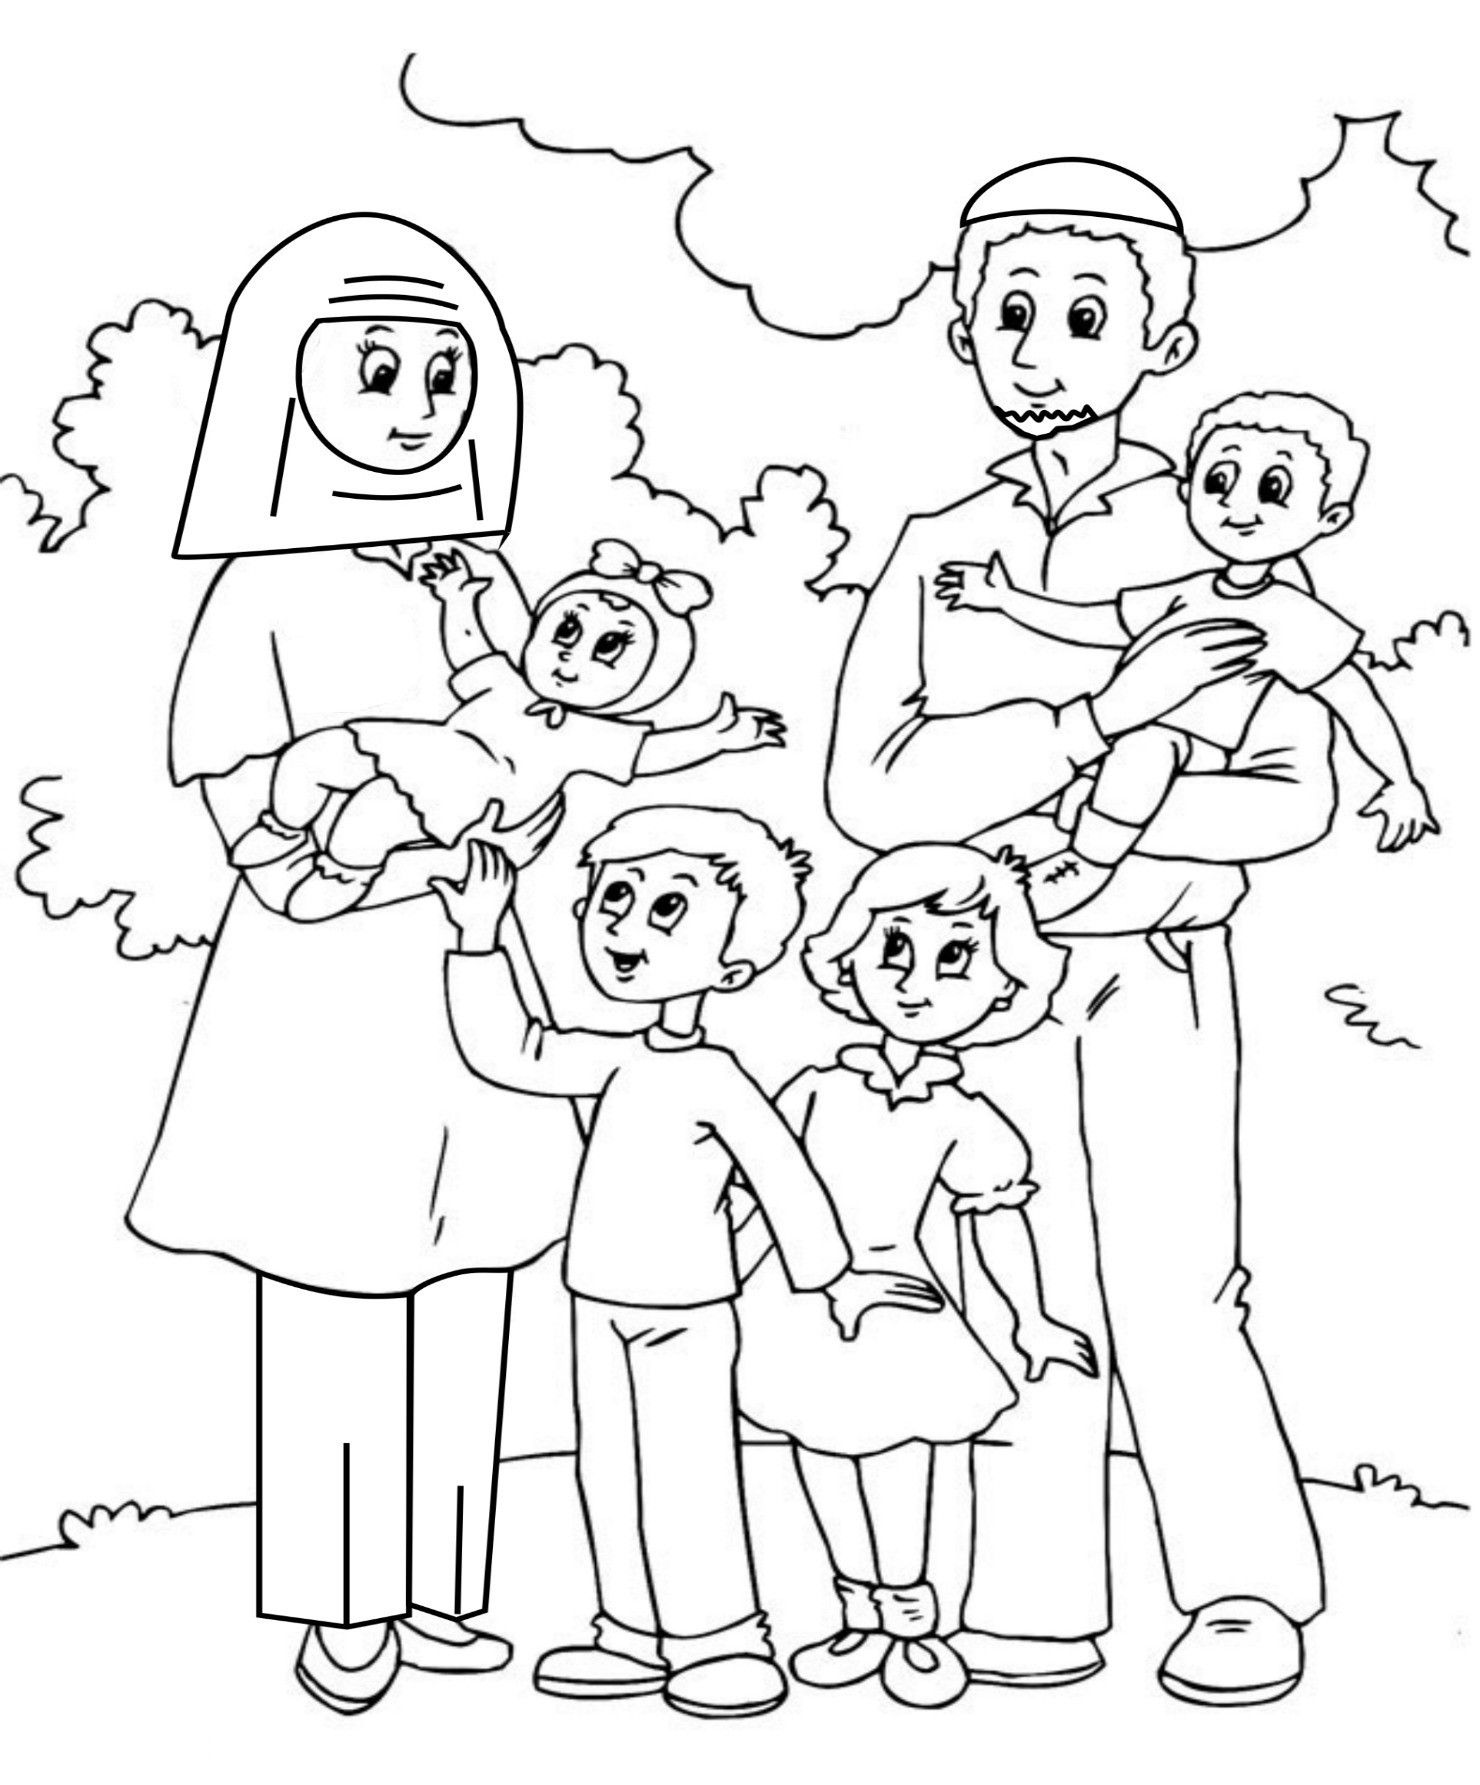 1480x1785 Image Result For Coloring Pages Family Free Pre K Houses